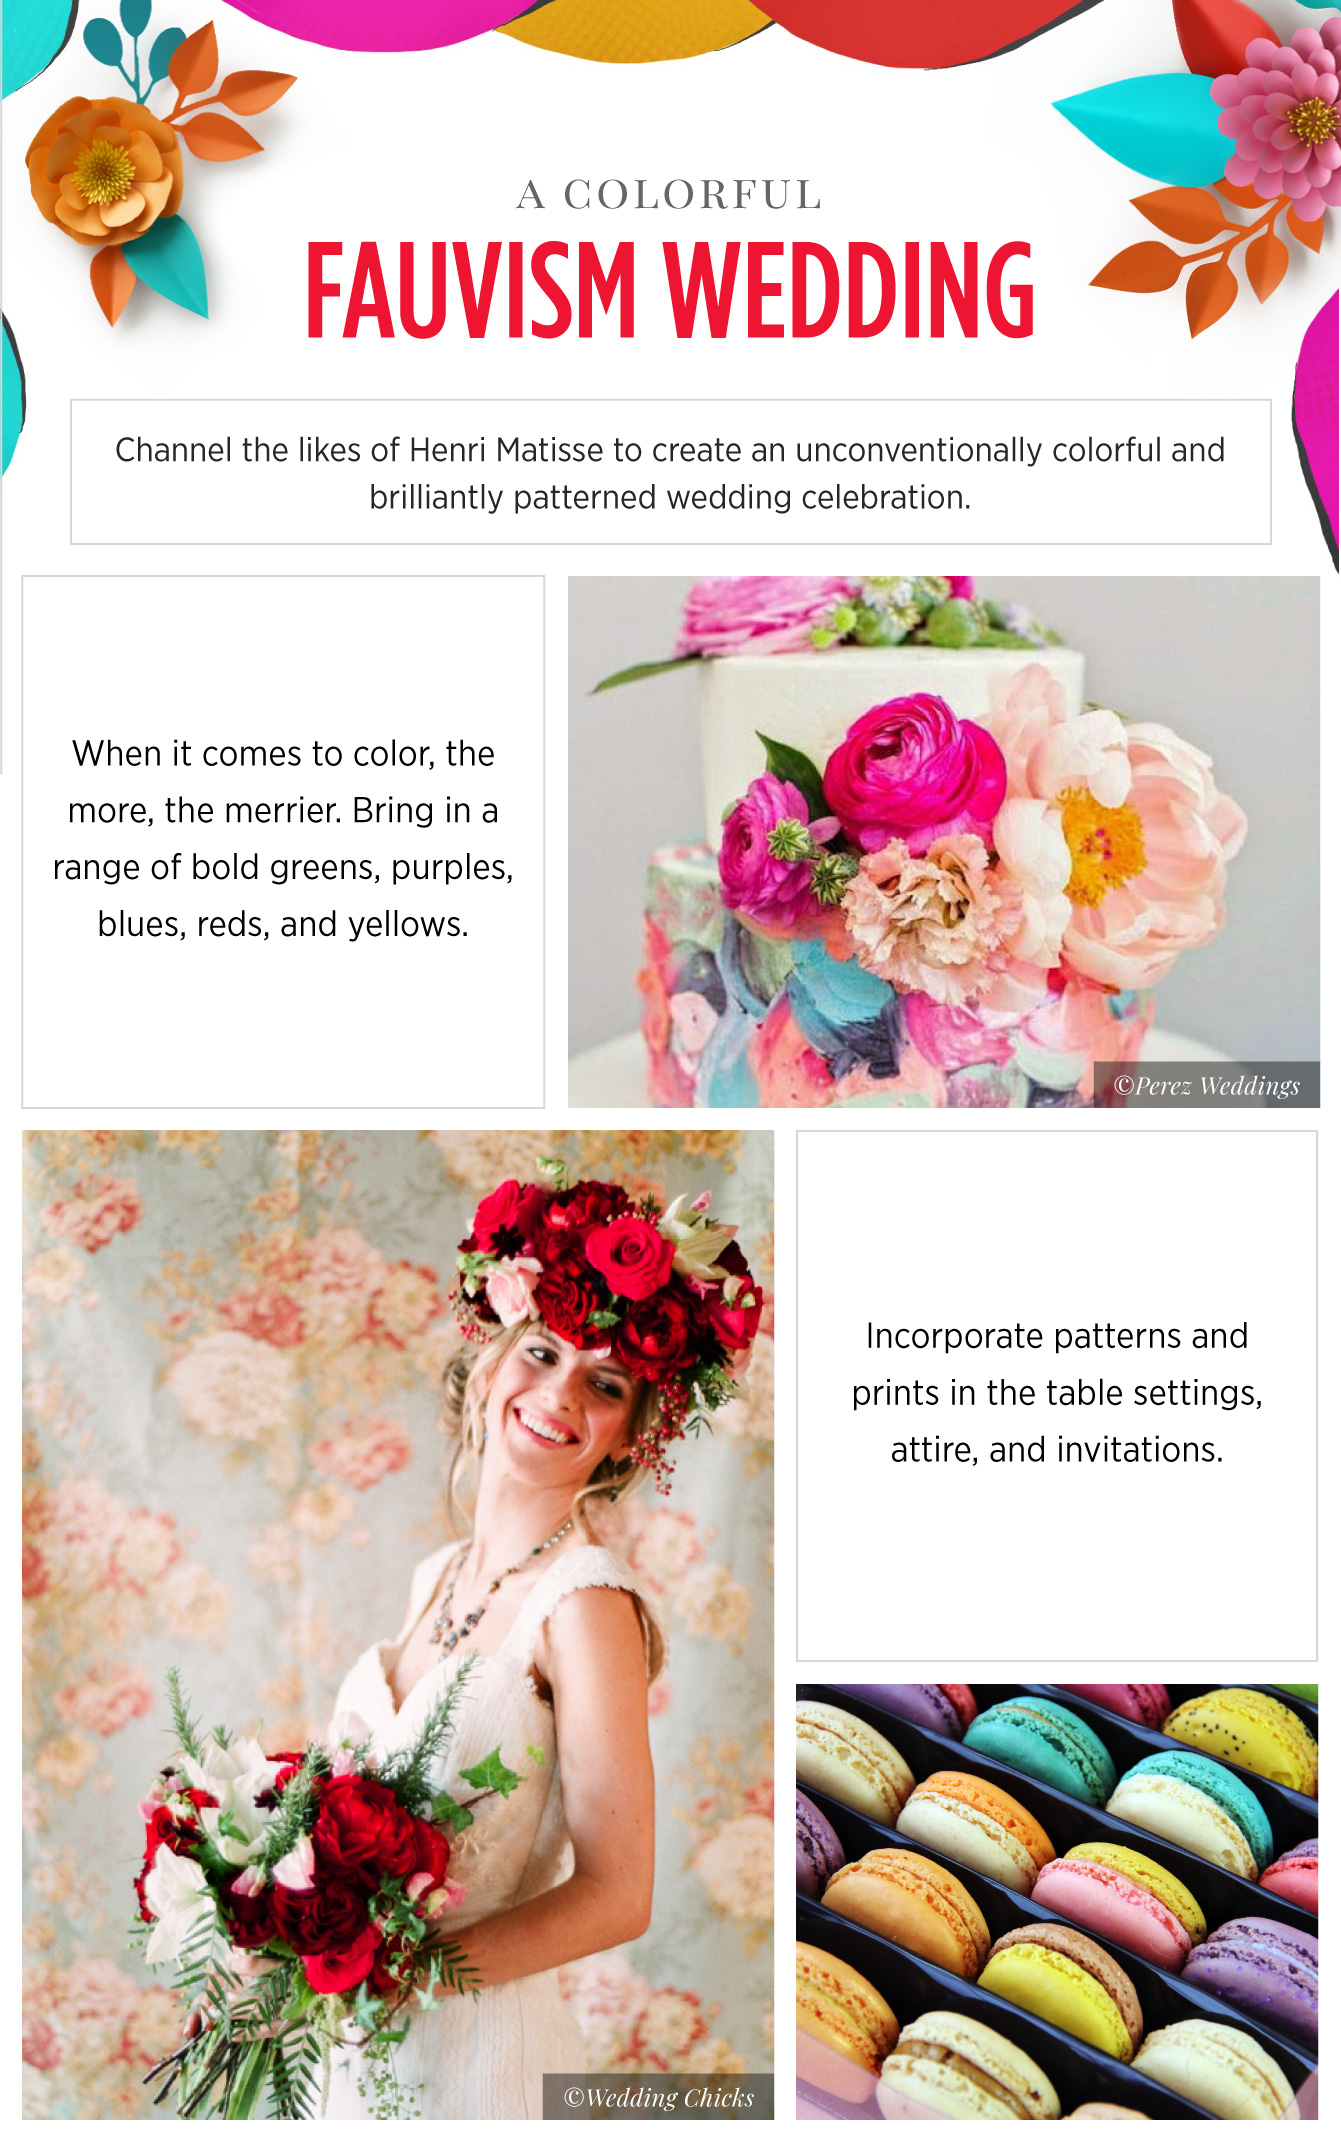 Wedding inspiration fauvism - See more inspirating wedding themes on B. Lovely Events